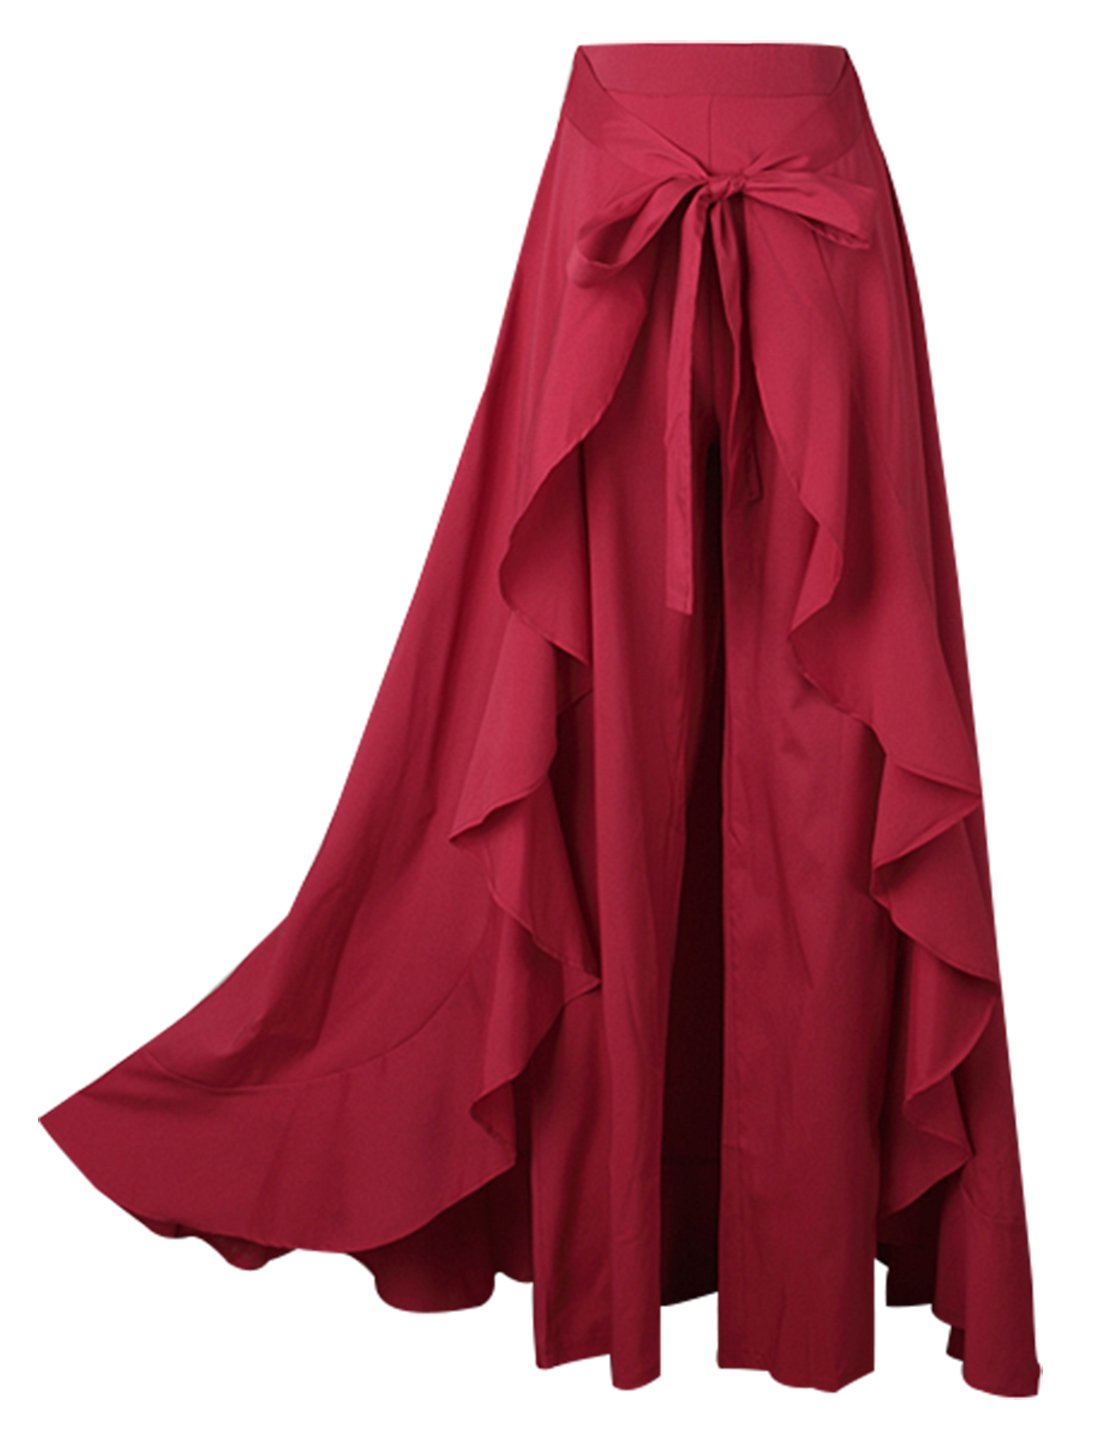 Avitalk Women Ruffle High Waist Pant Skirt Split Chiffon Long Maxi Palazzo Skirt Aivtalk